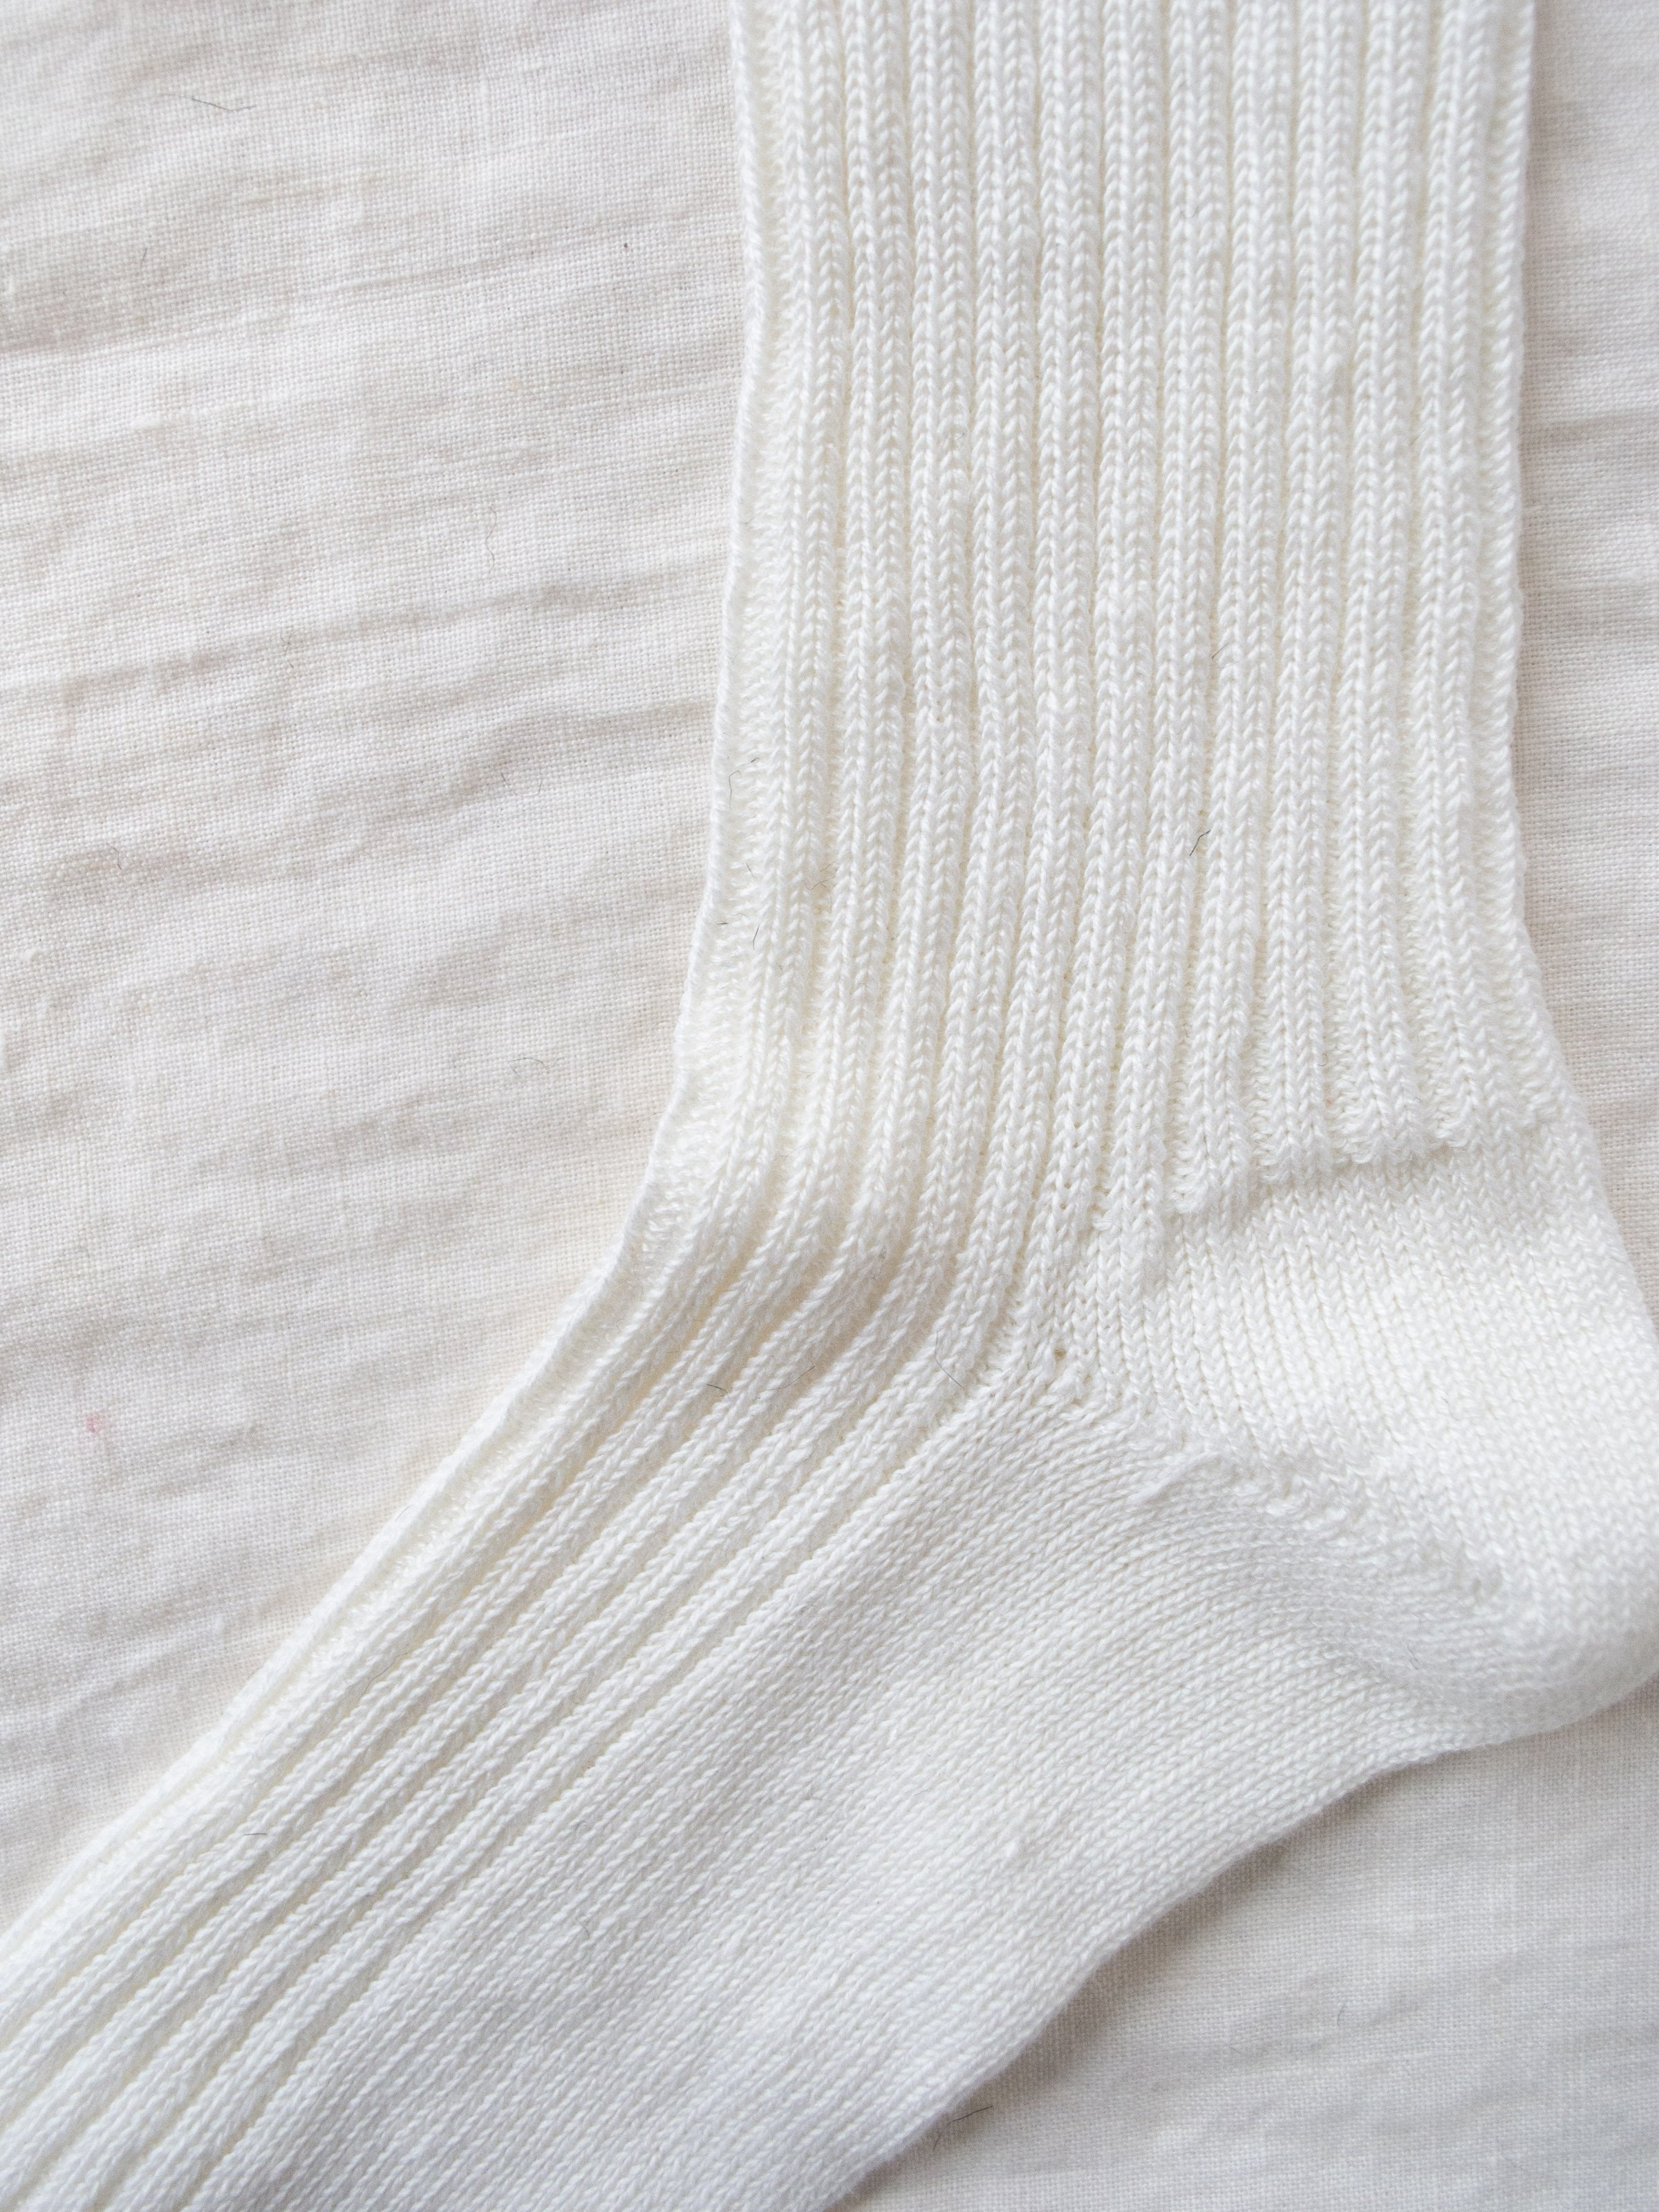 Namu Shop - Ichi Antiquites Linen Rib Socks